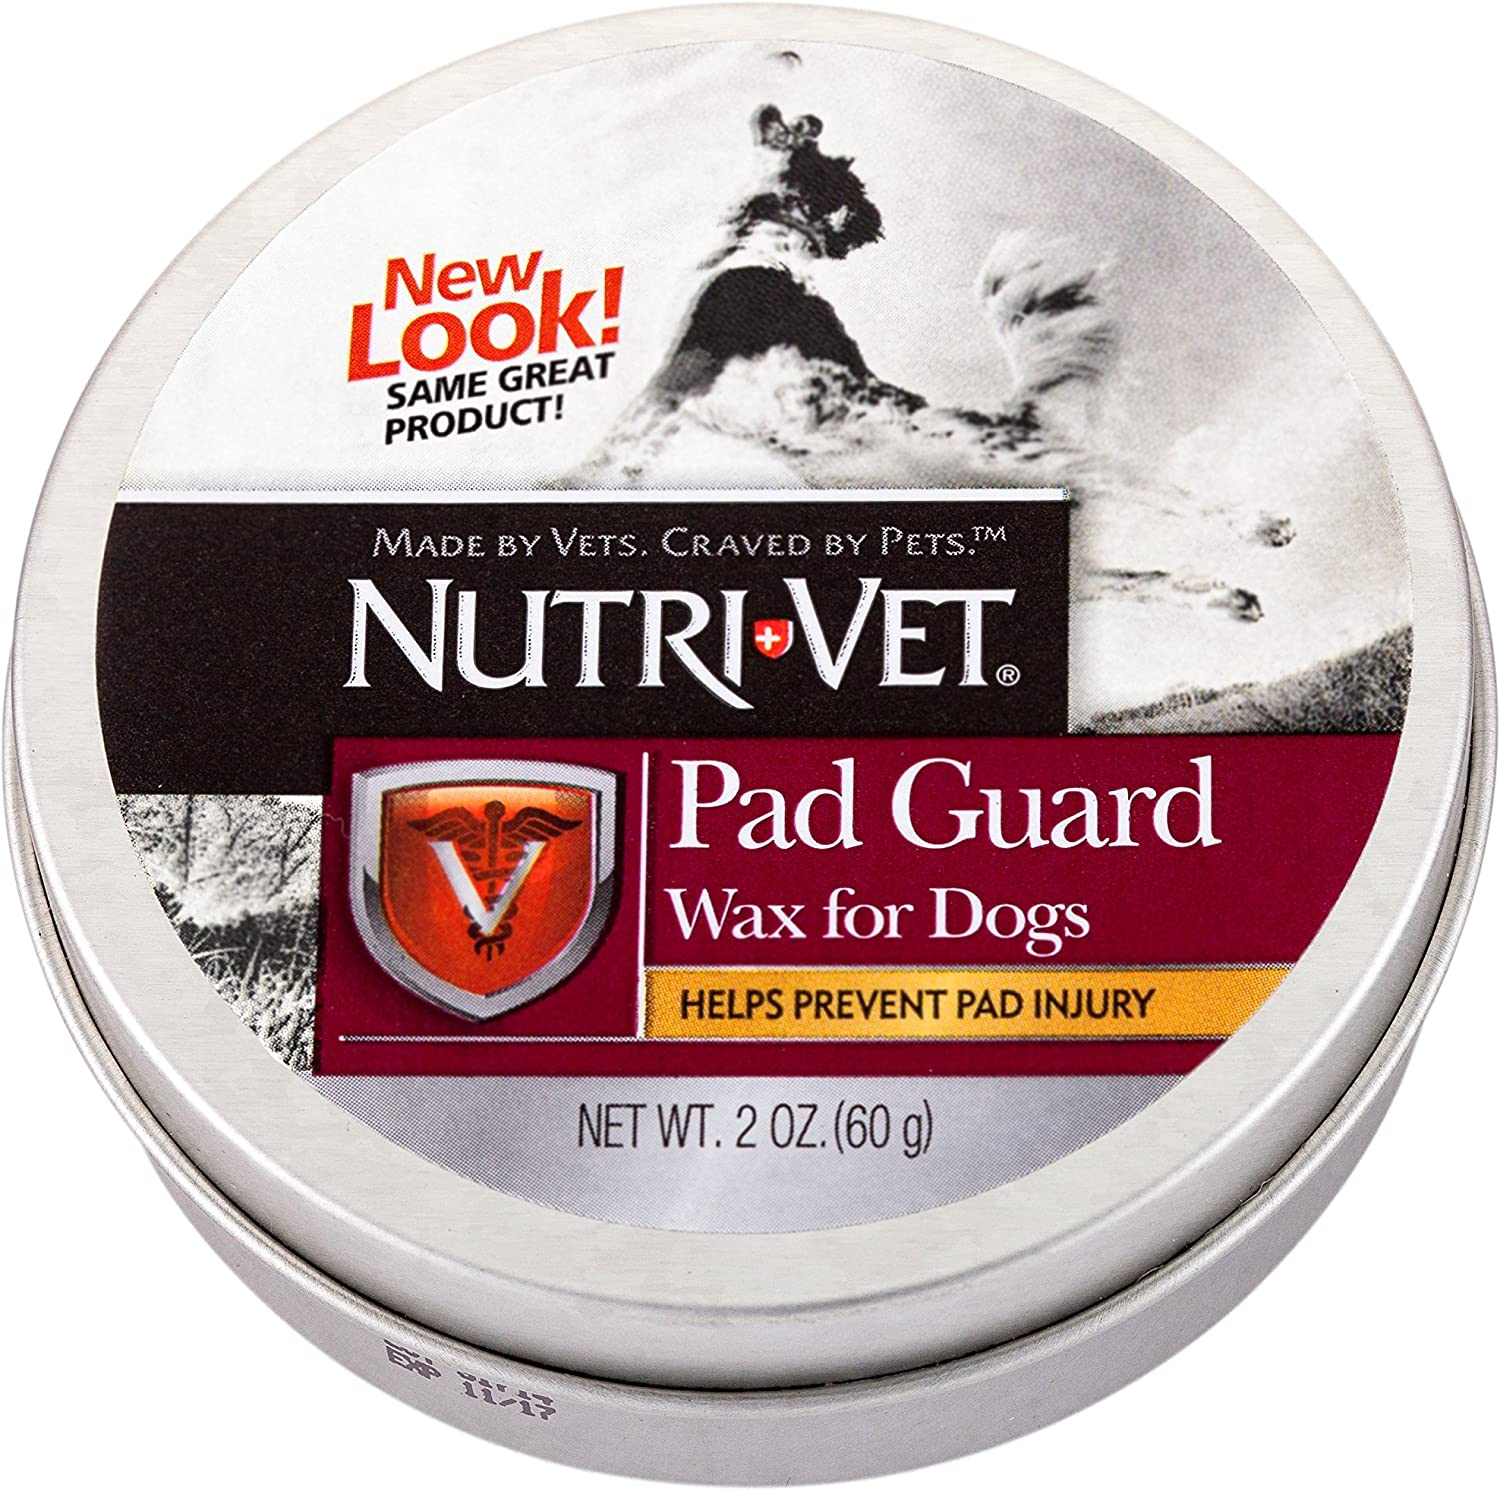 Nutri-Vet Pad Guard Recommended 2 Ounces Wax Clearance SALE Limited time